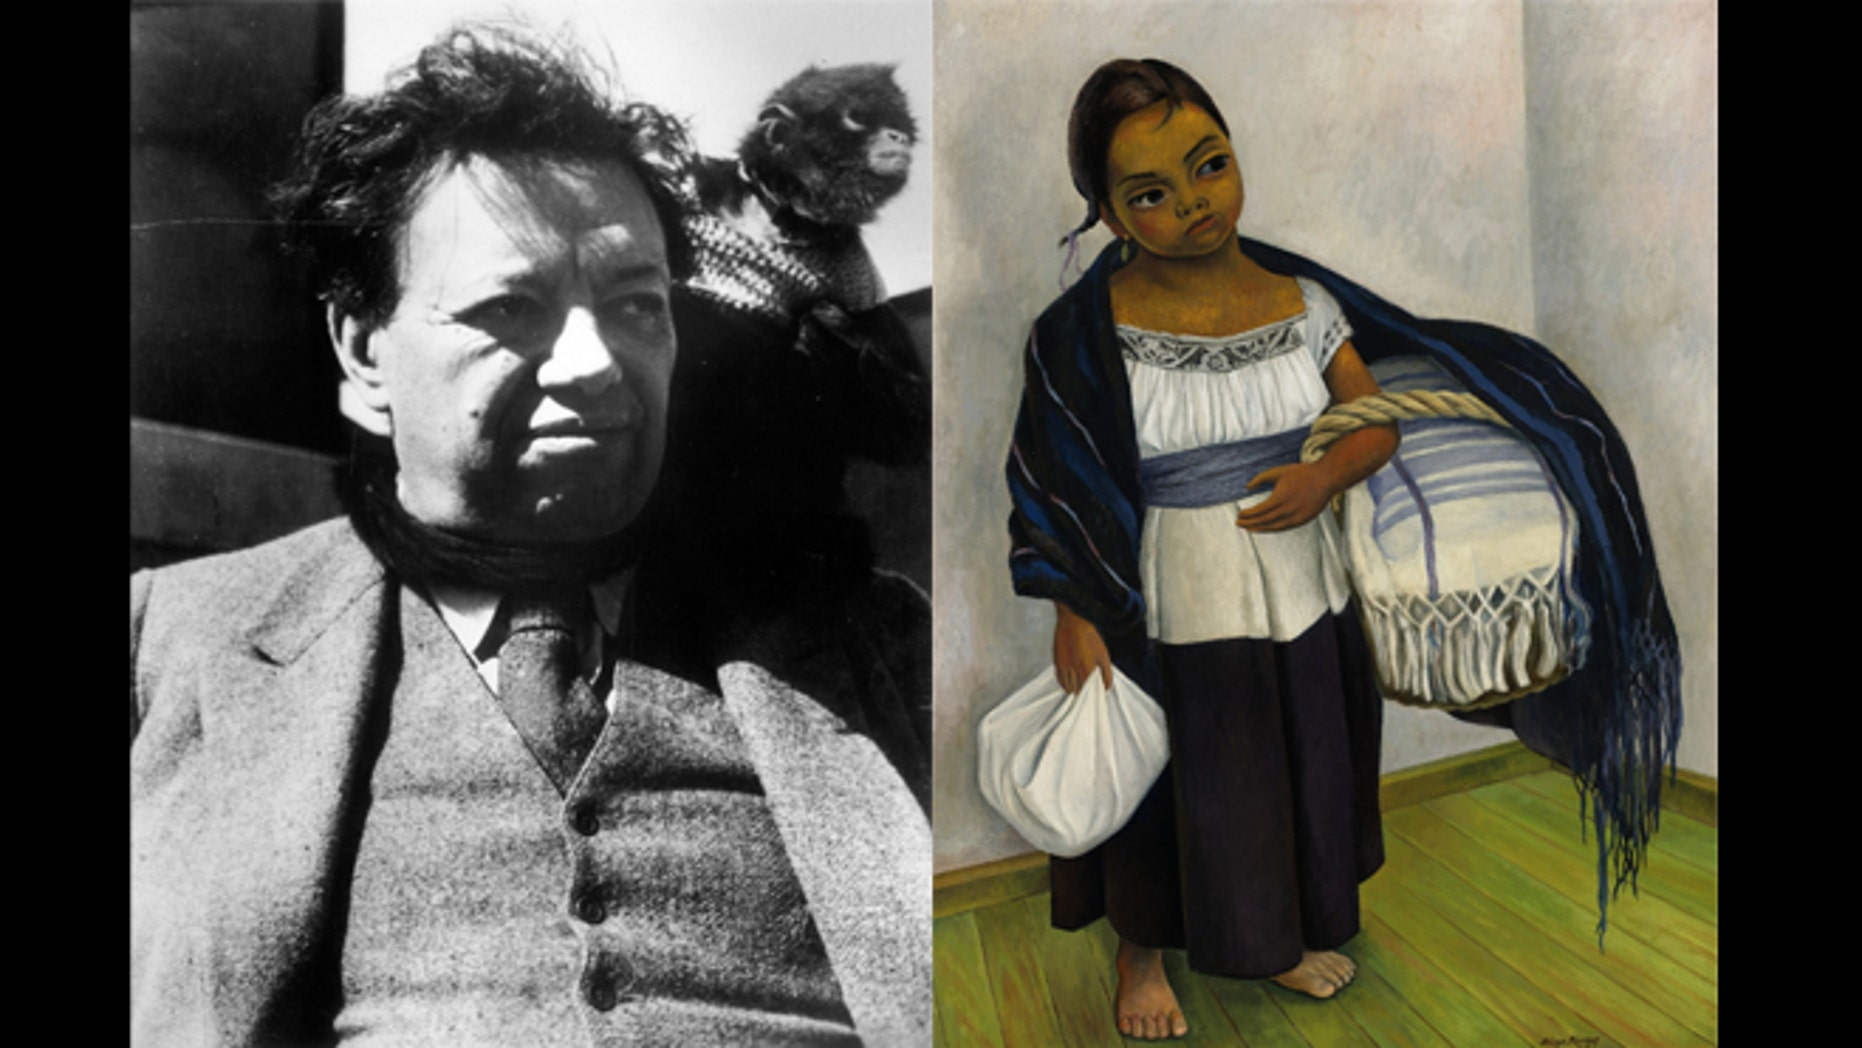 """On the left, Painter Diego Rivera (1886 - 1957) at his home in San Angel in January of 1950. (Photo by Three Lions/Getty Images) He was Famous for his murals depicting life and history of the Mexican people, including his 1939 oil painting """"Girl in Blue and White."""" (AP)"""